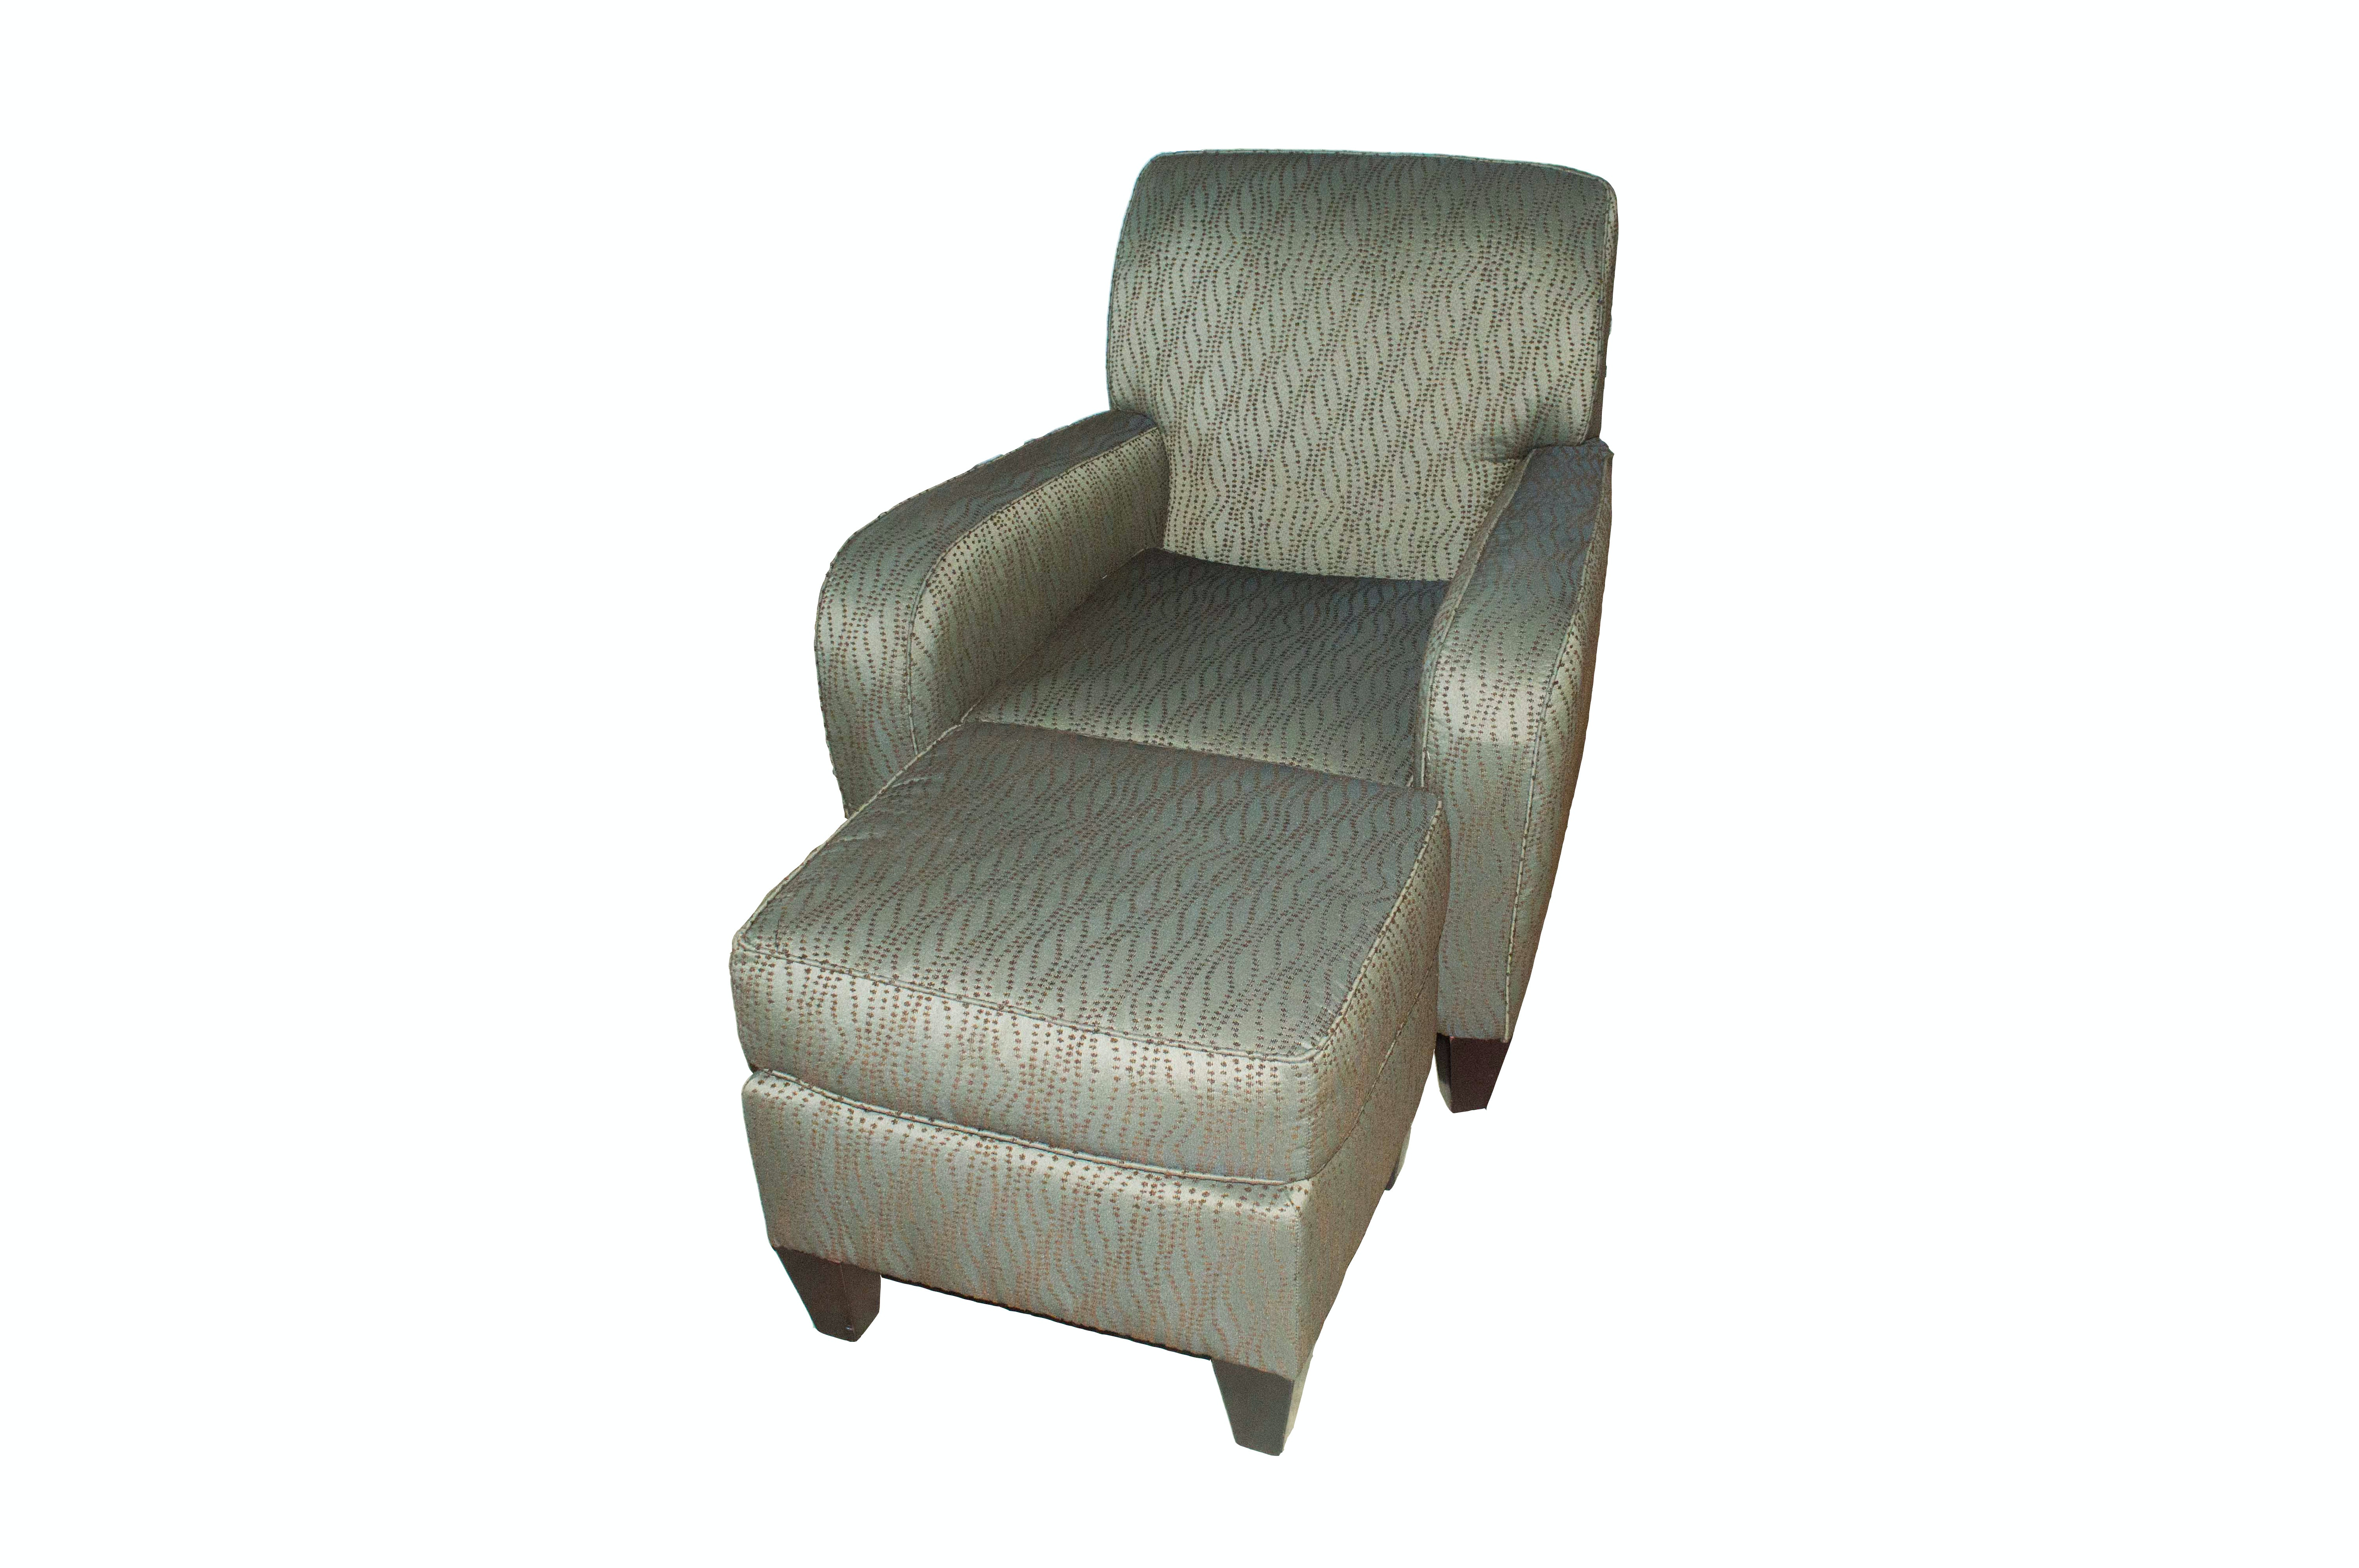 Contemporary Upholstered Club Chair with Footstool